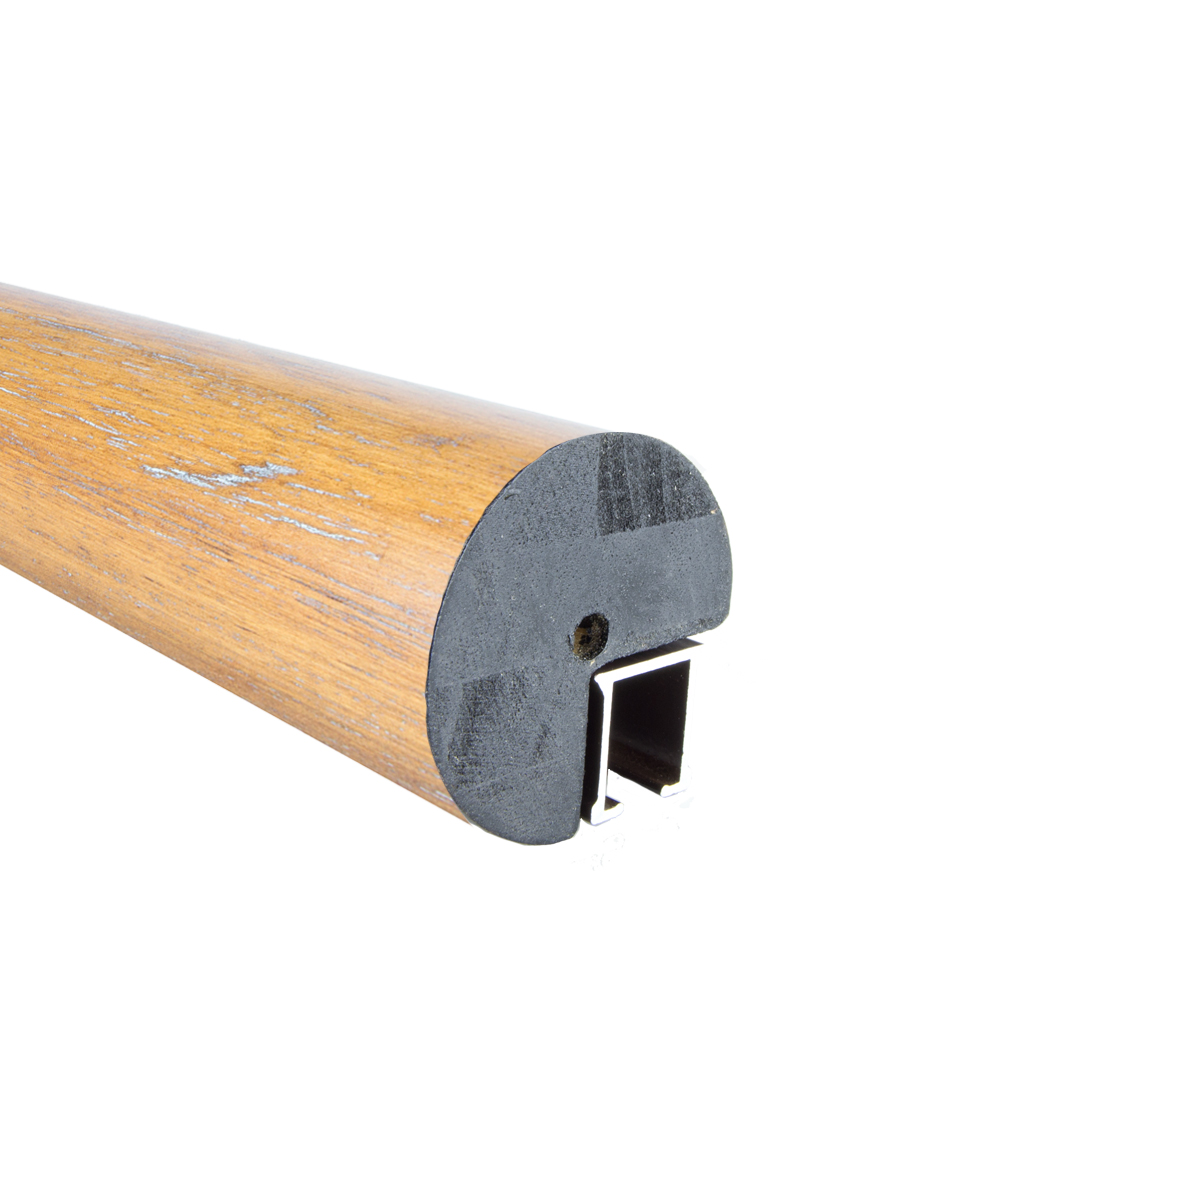 Traverse Rod Sgl Track-4 Ft. 4 Pickled Oak